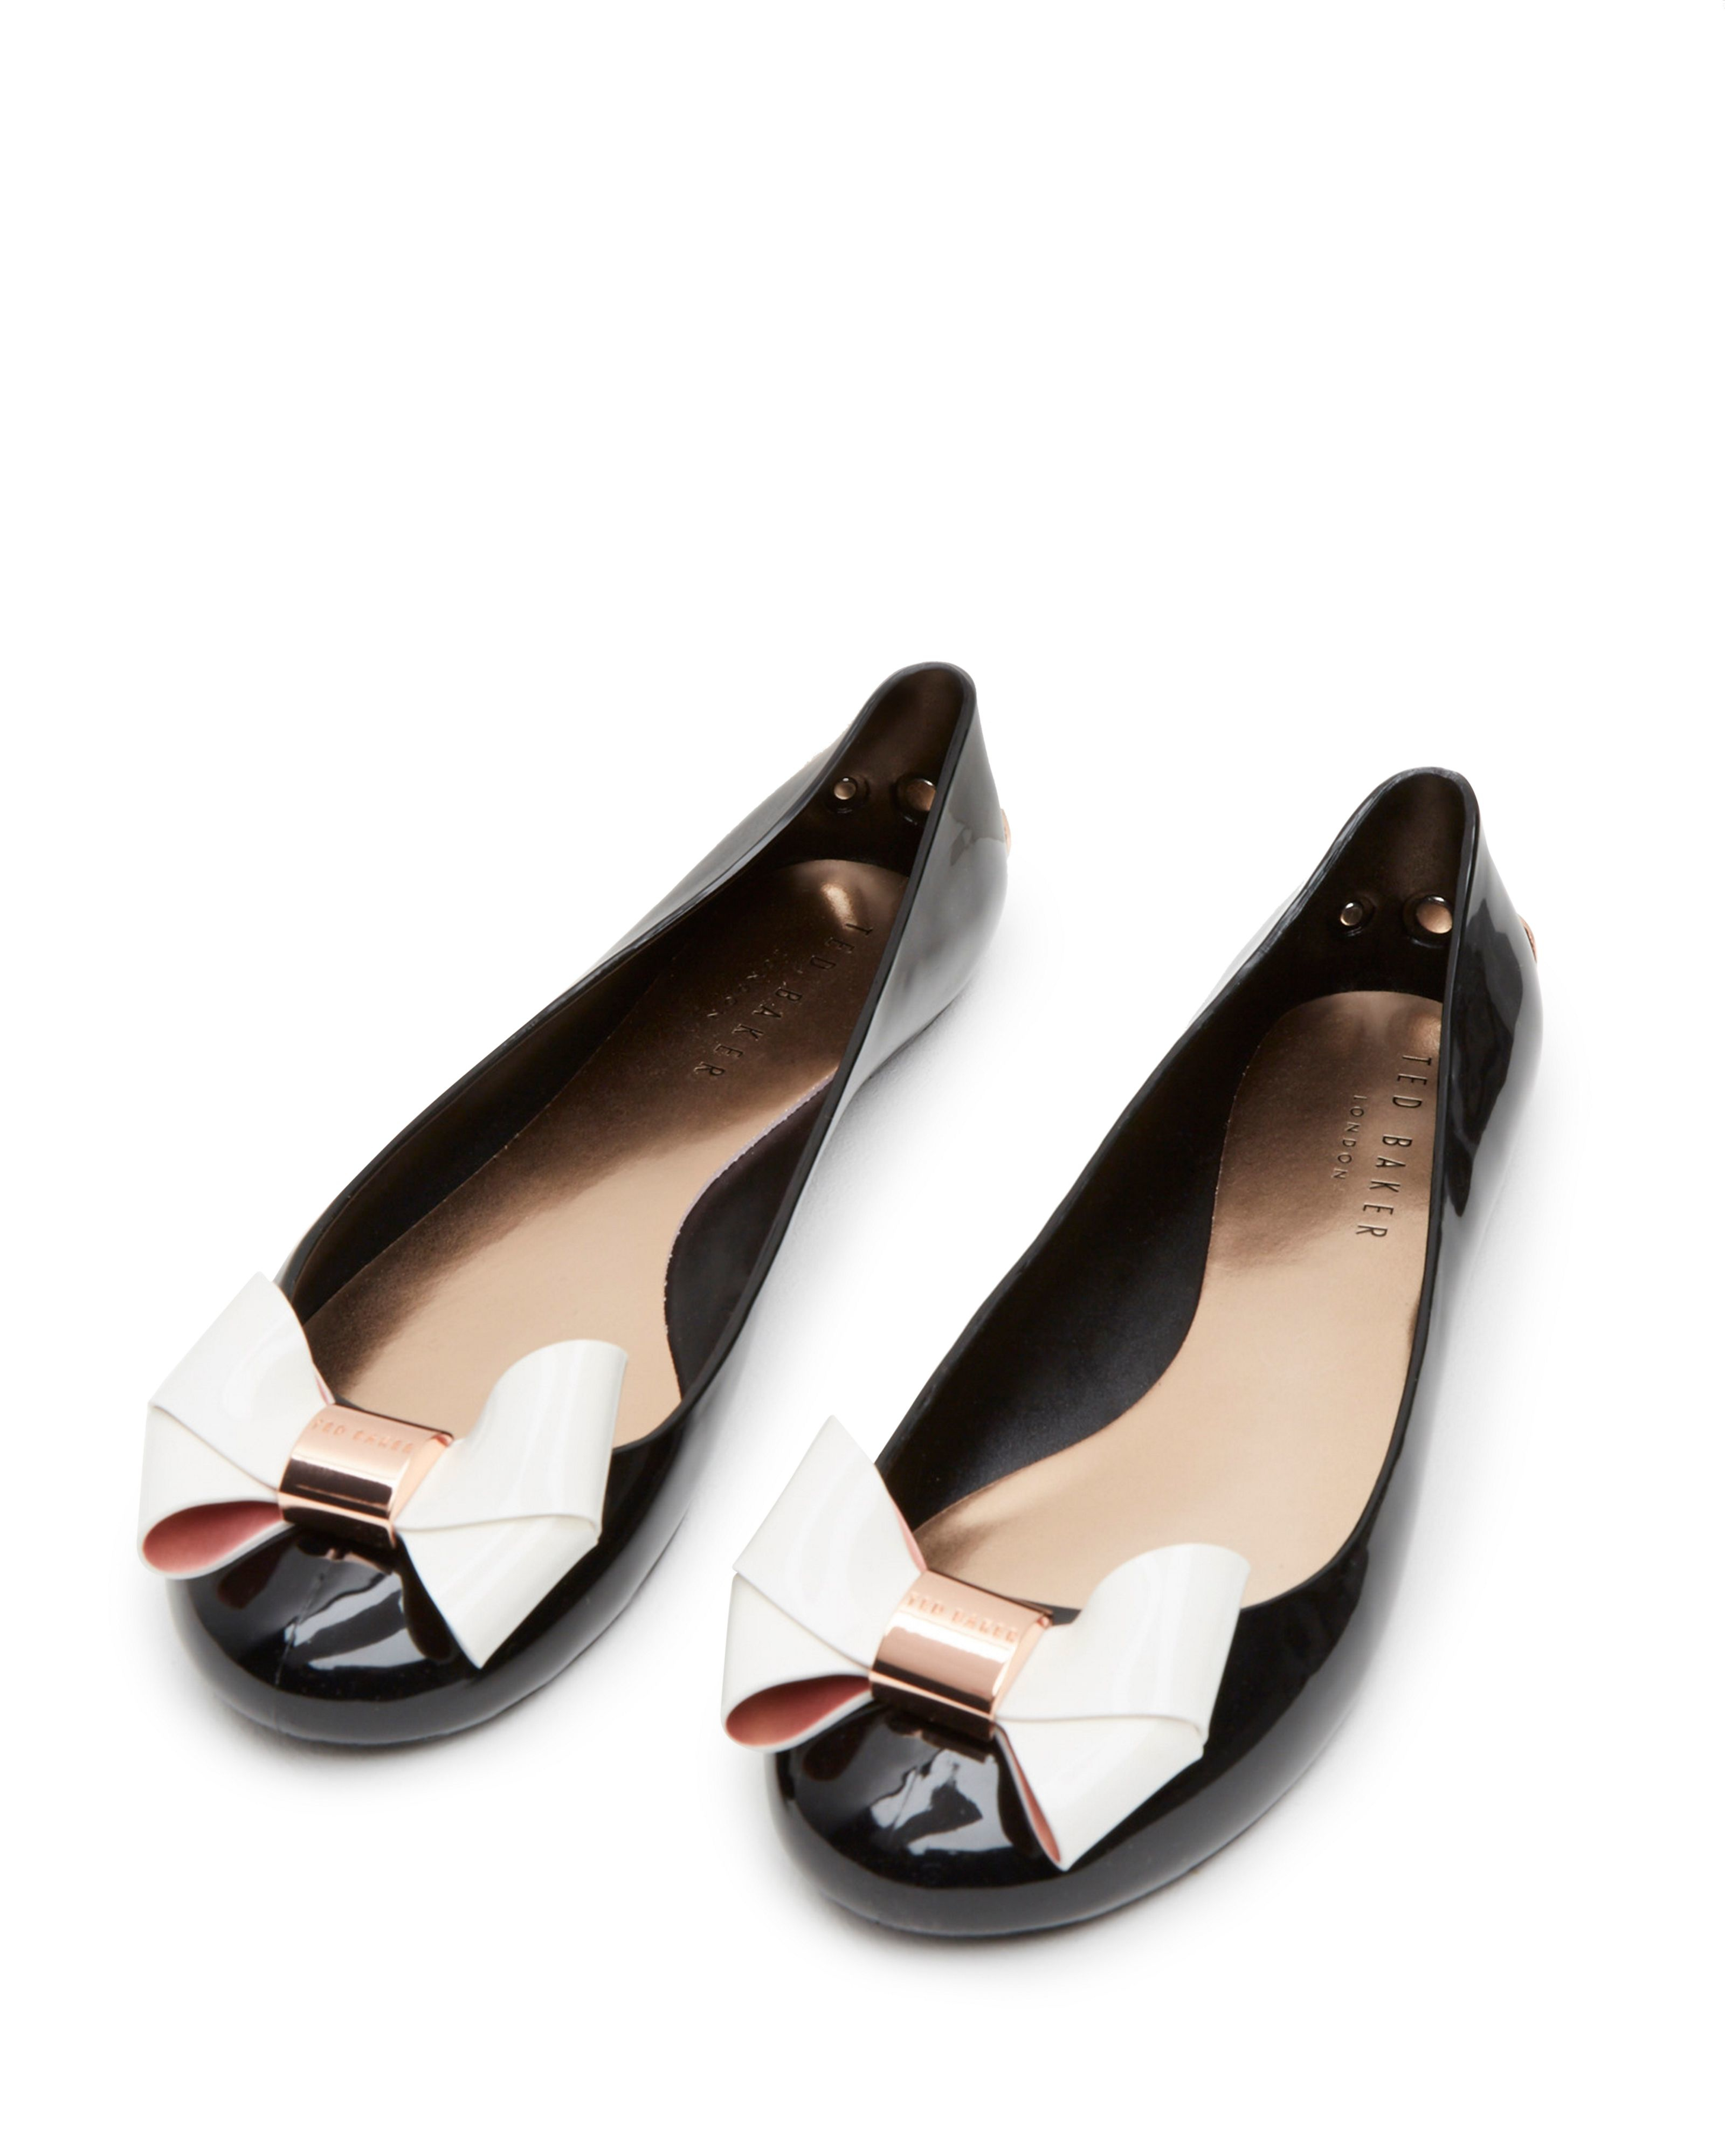 Jack Madden Ford >> Ted Baker Faiyte Large Bow Jelly Pumps in White - Lyst